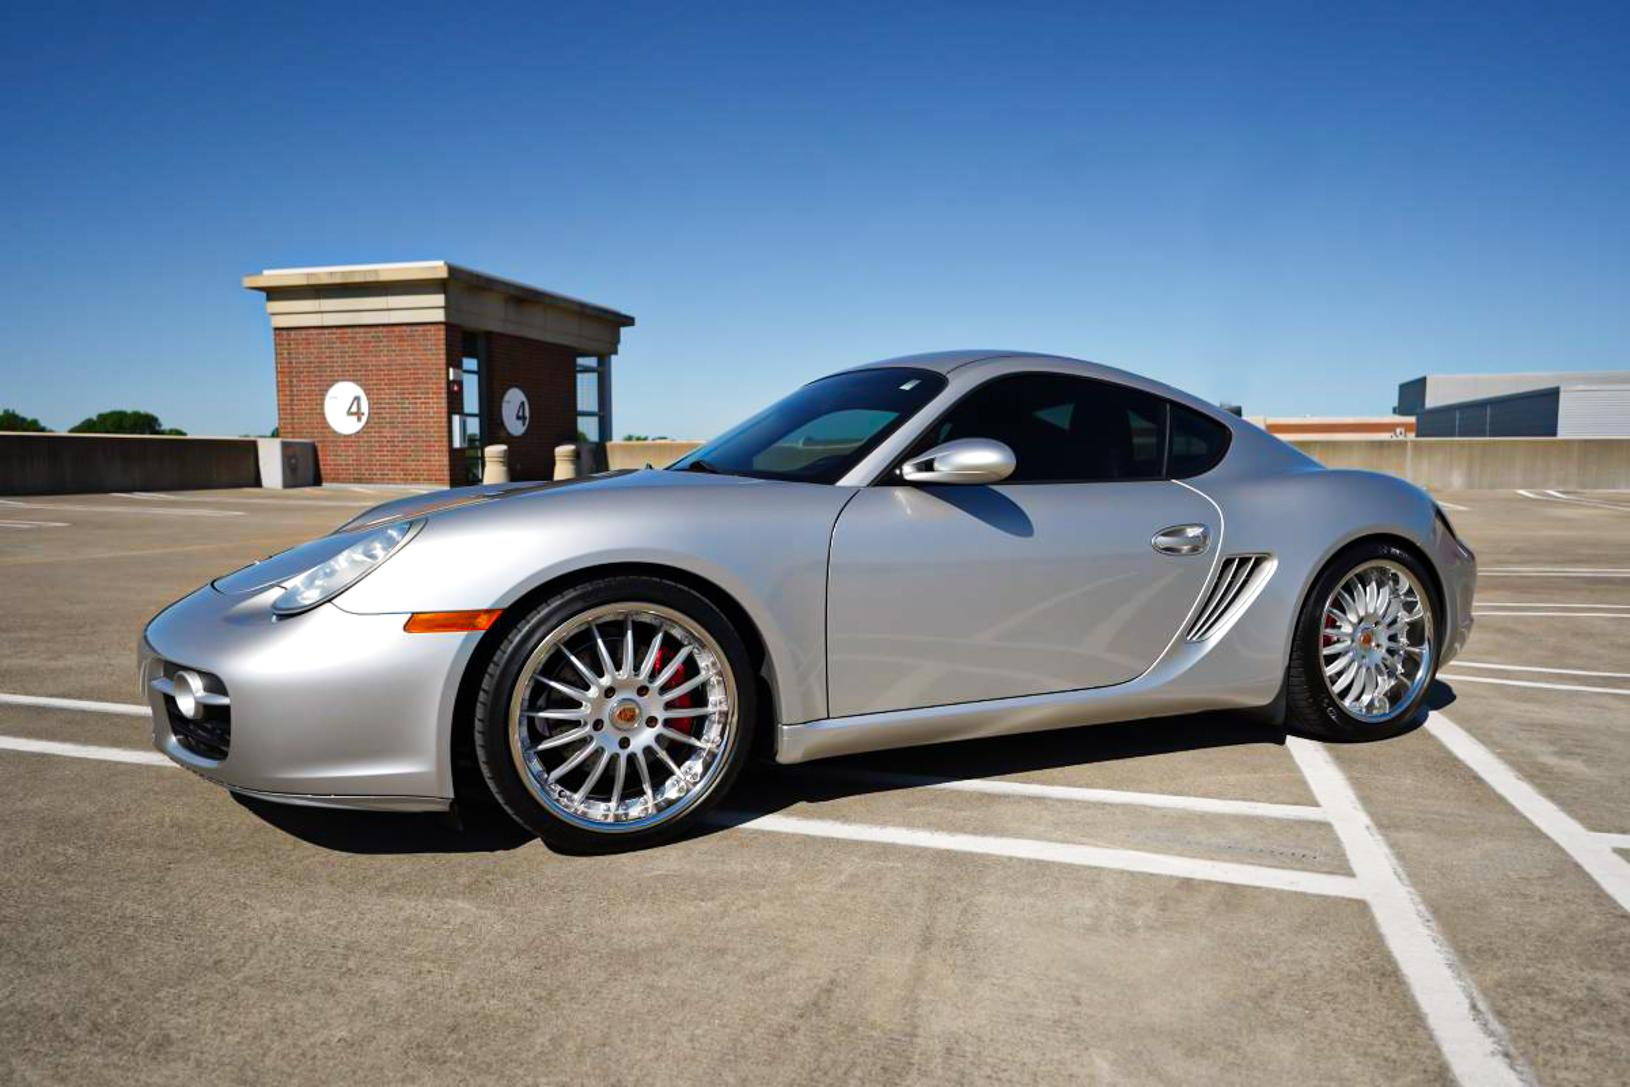 2006 Porsche Cayman S 'Turbo'